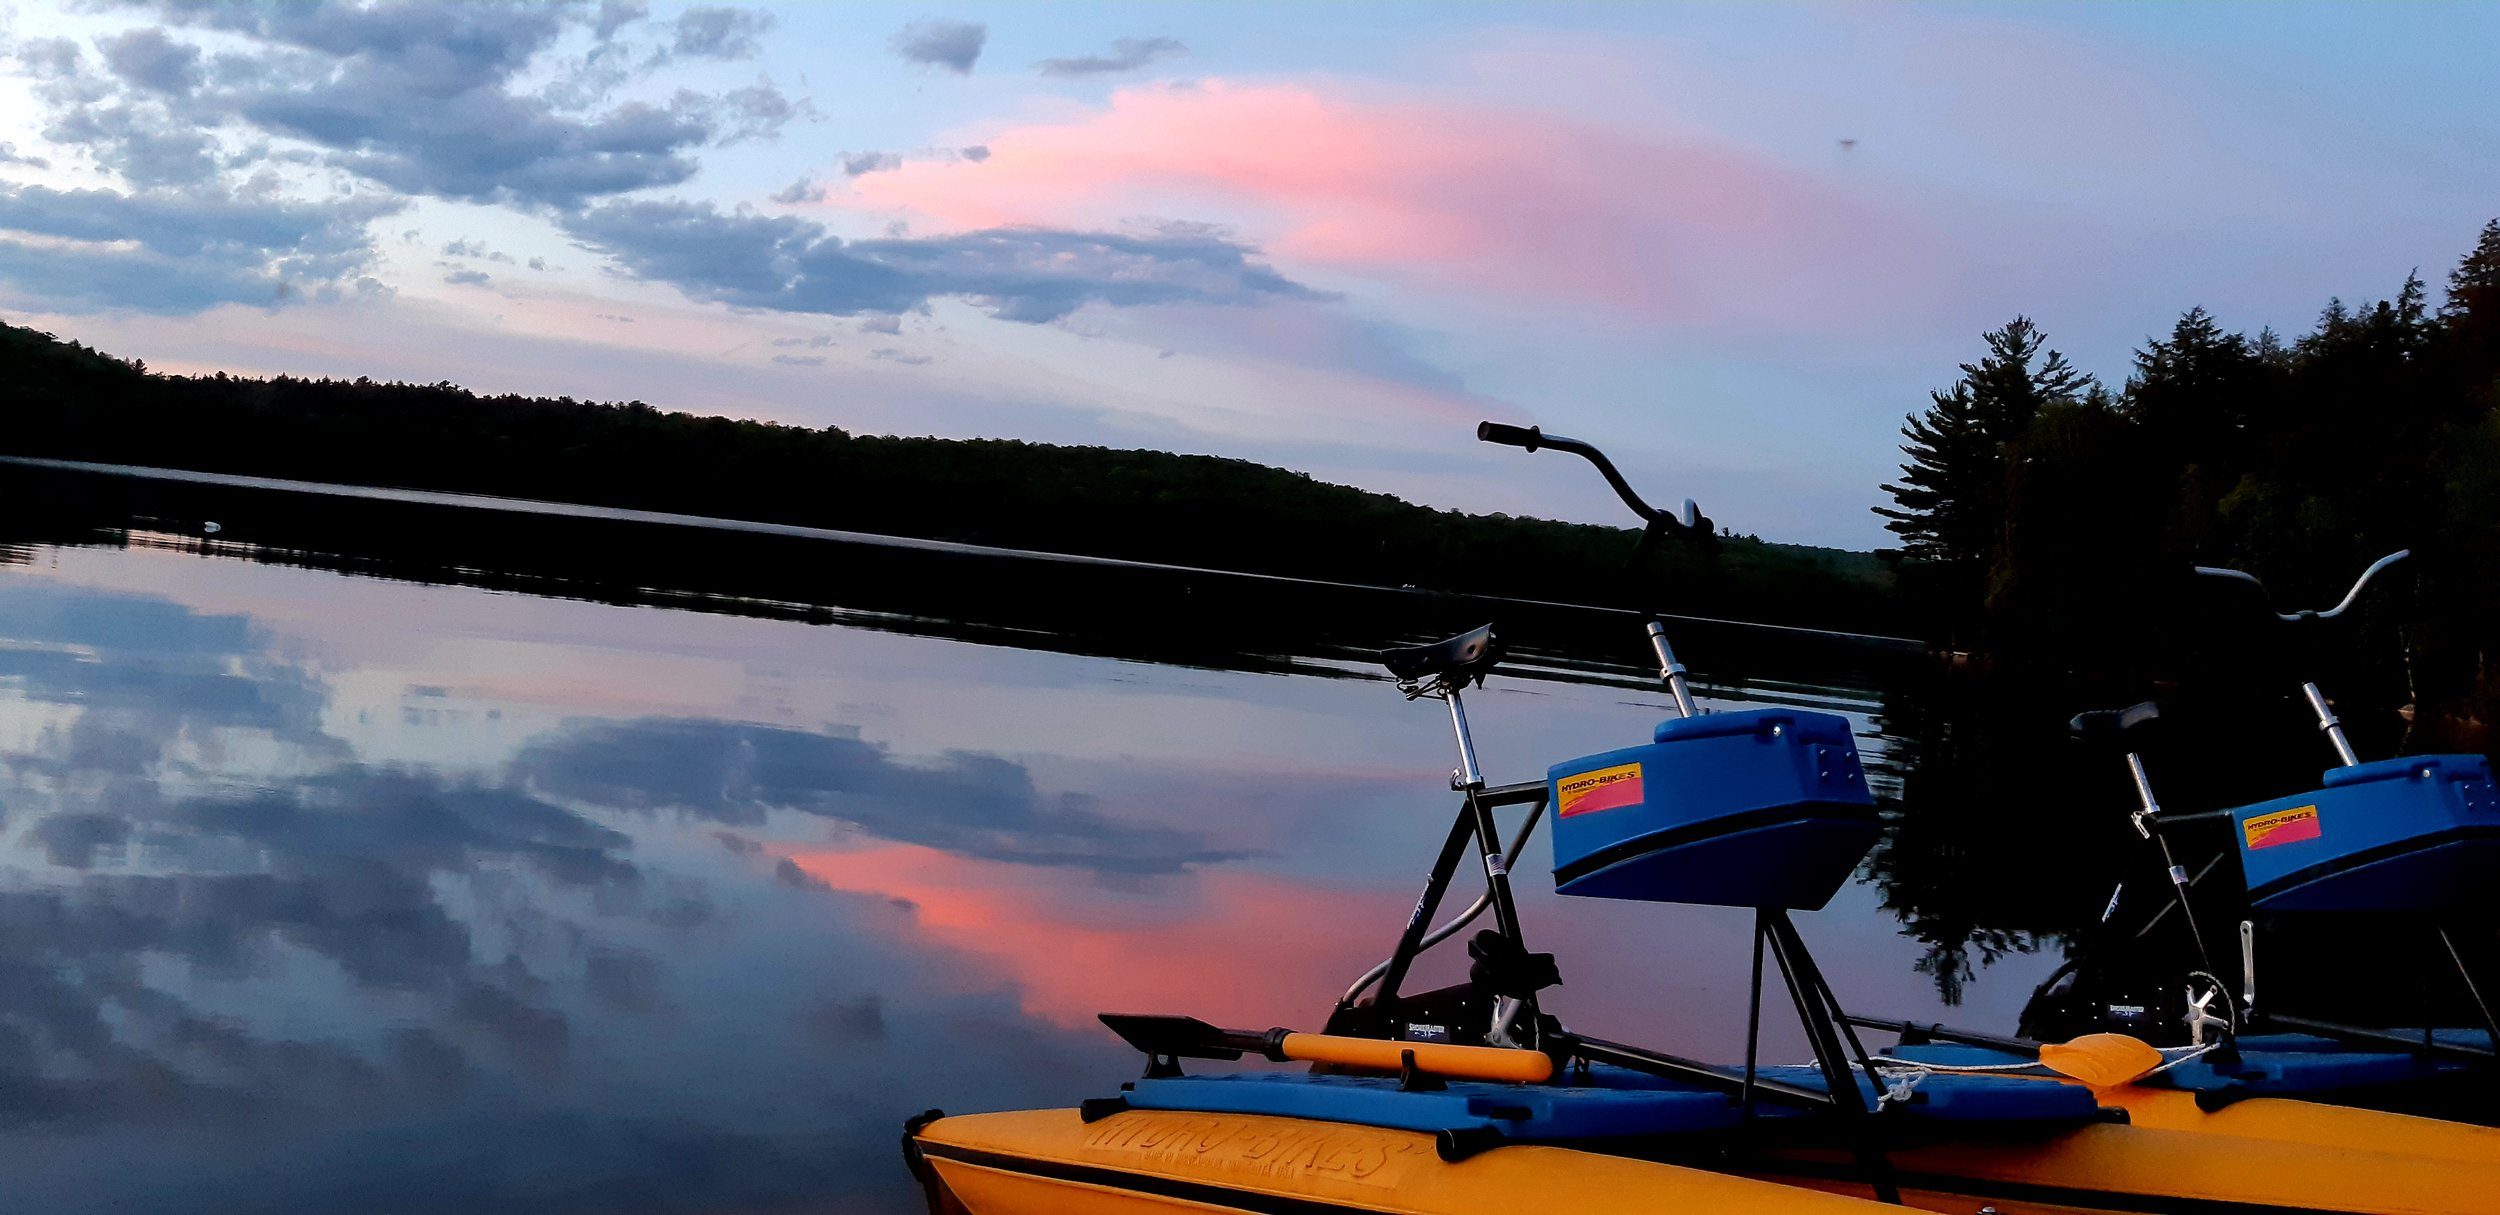 Hydrobike Sunset.jpg